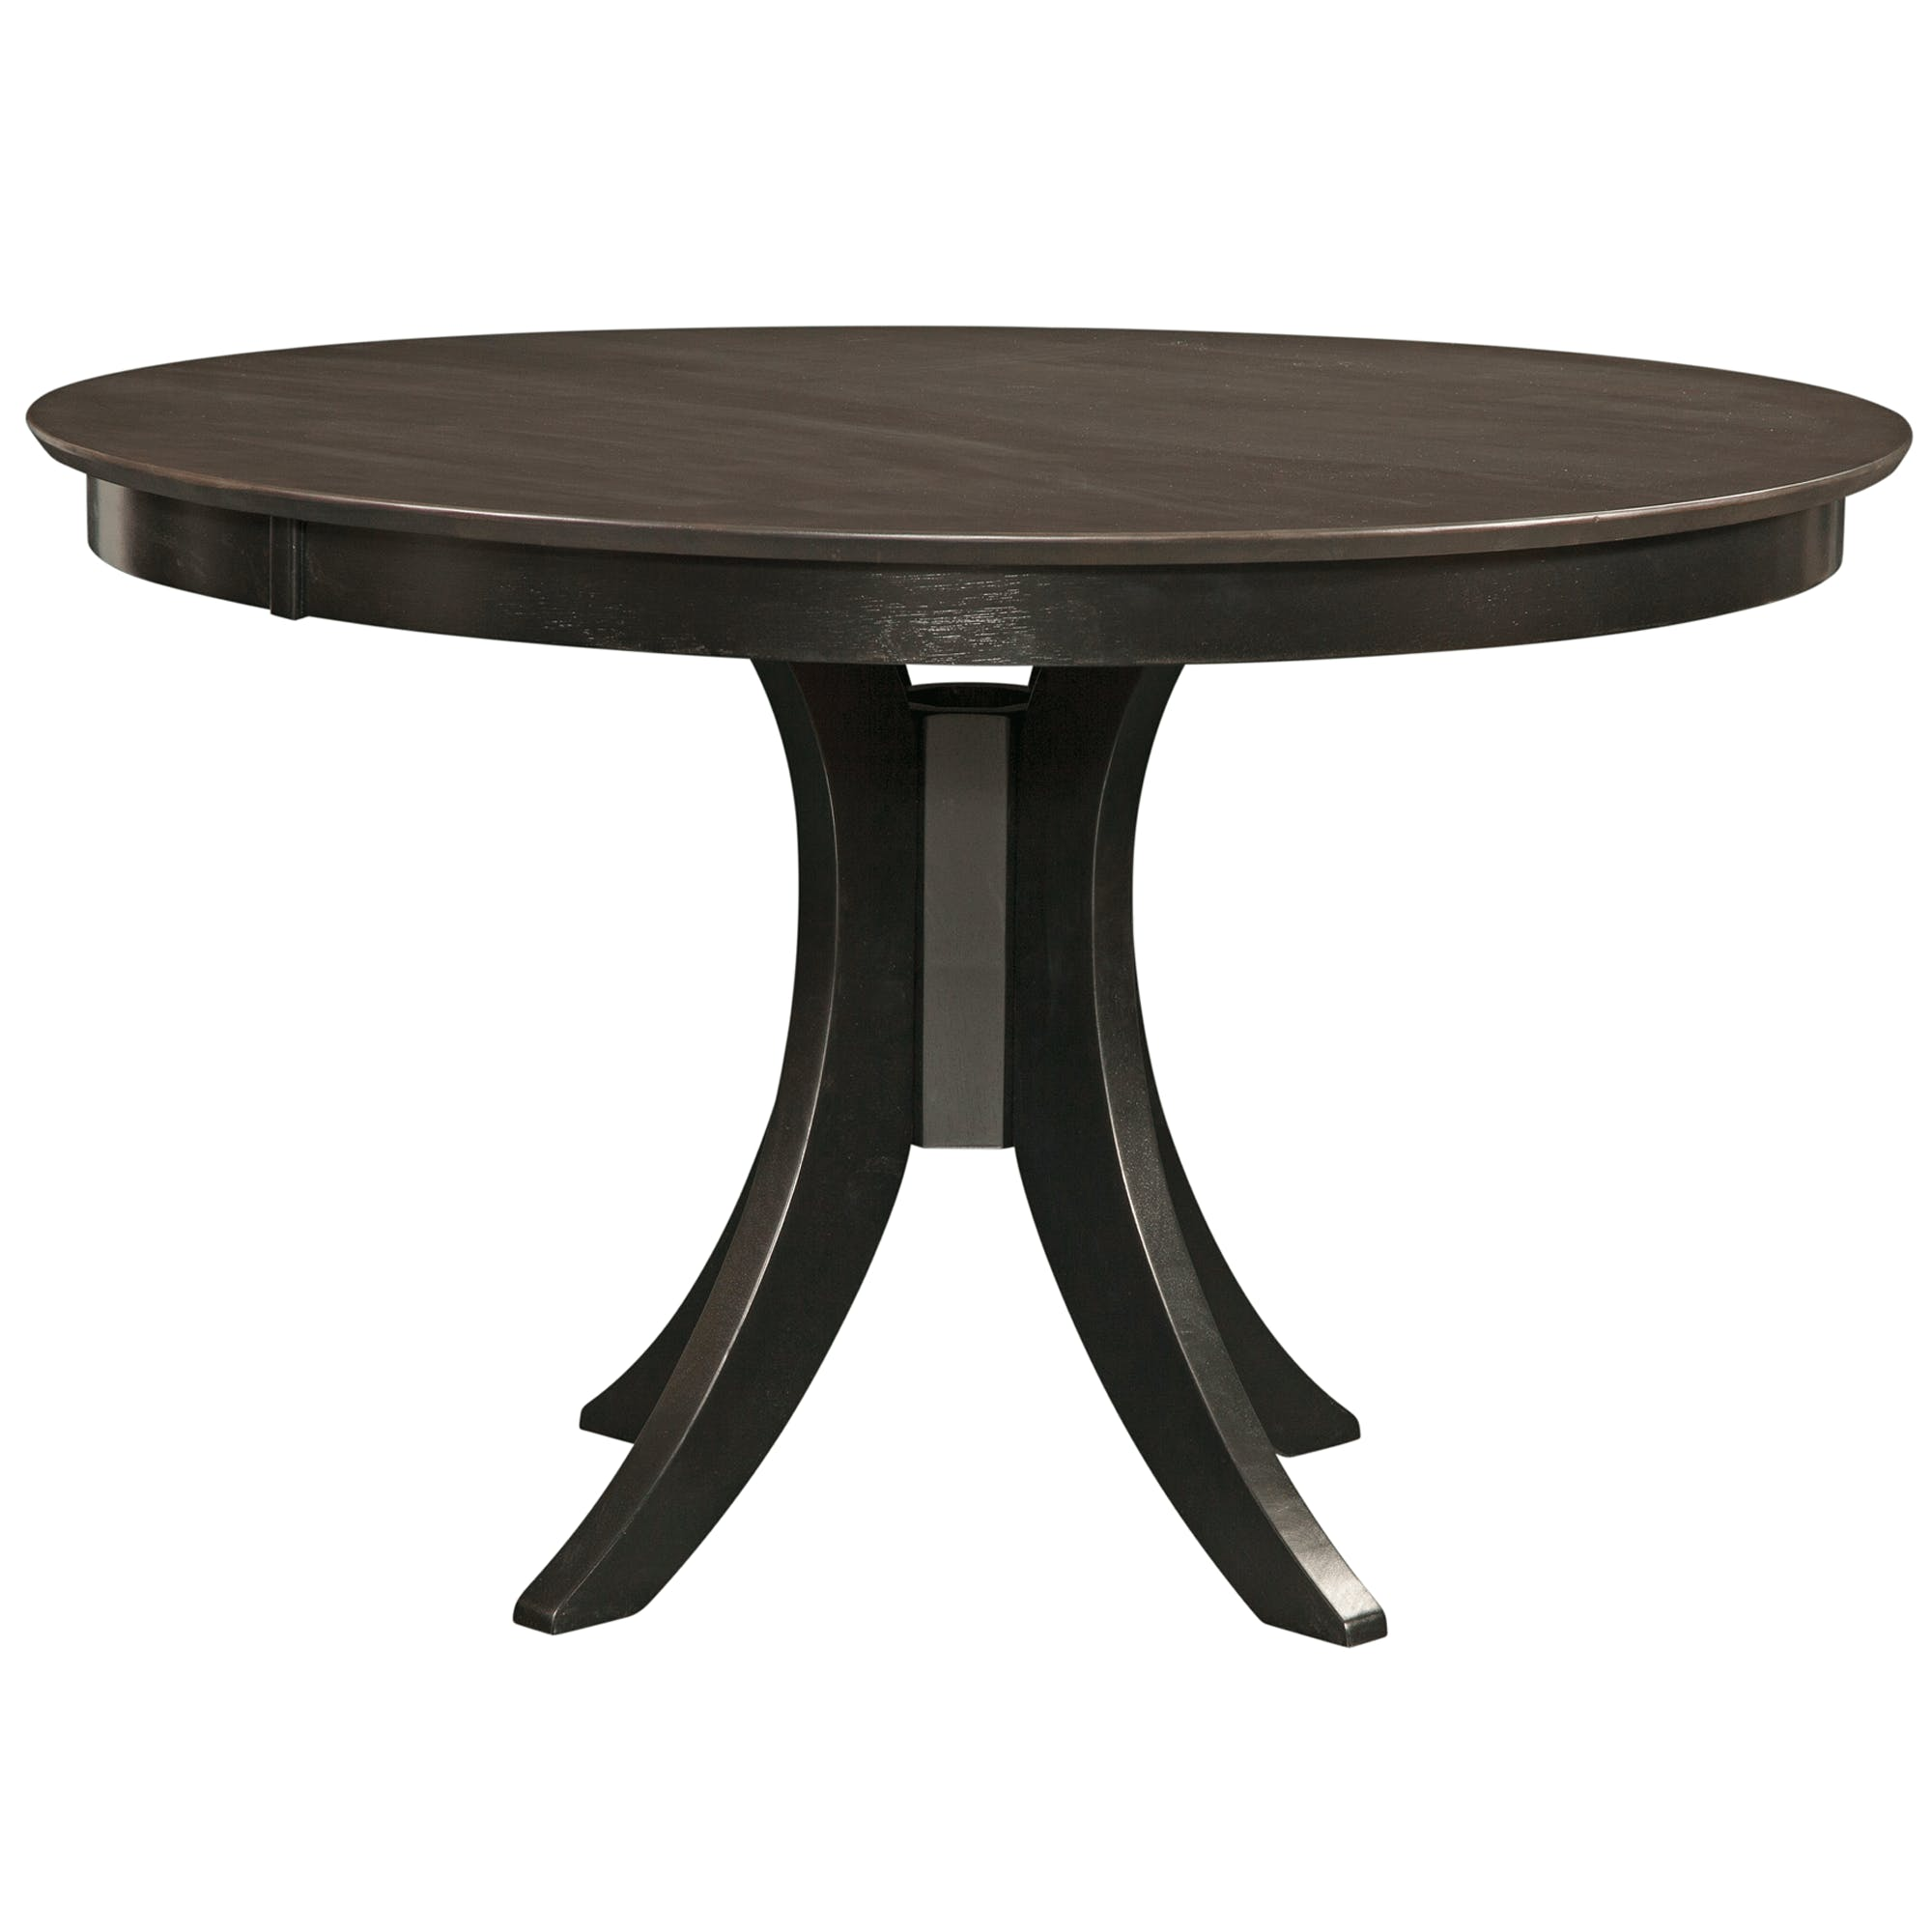 distressed black tables small tall antique glamorous round pedestal looking diy bedside end unfinished good accent oak table wood large full size target lamps custom coffee porch